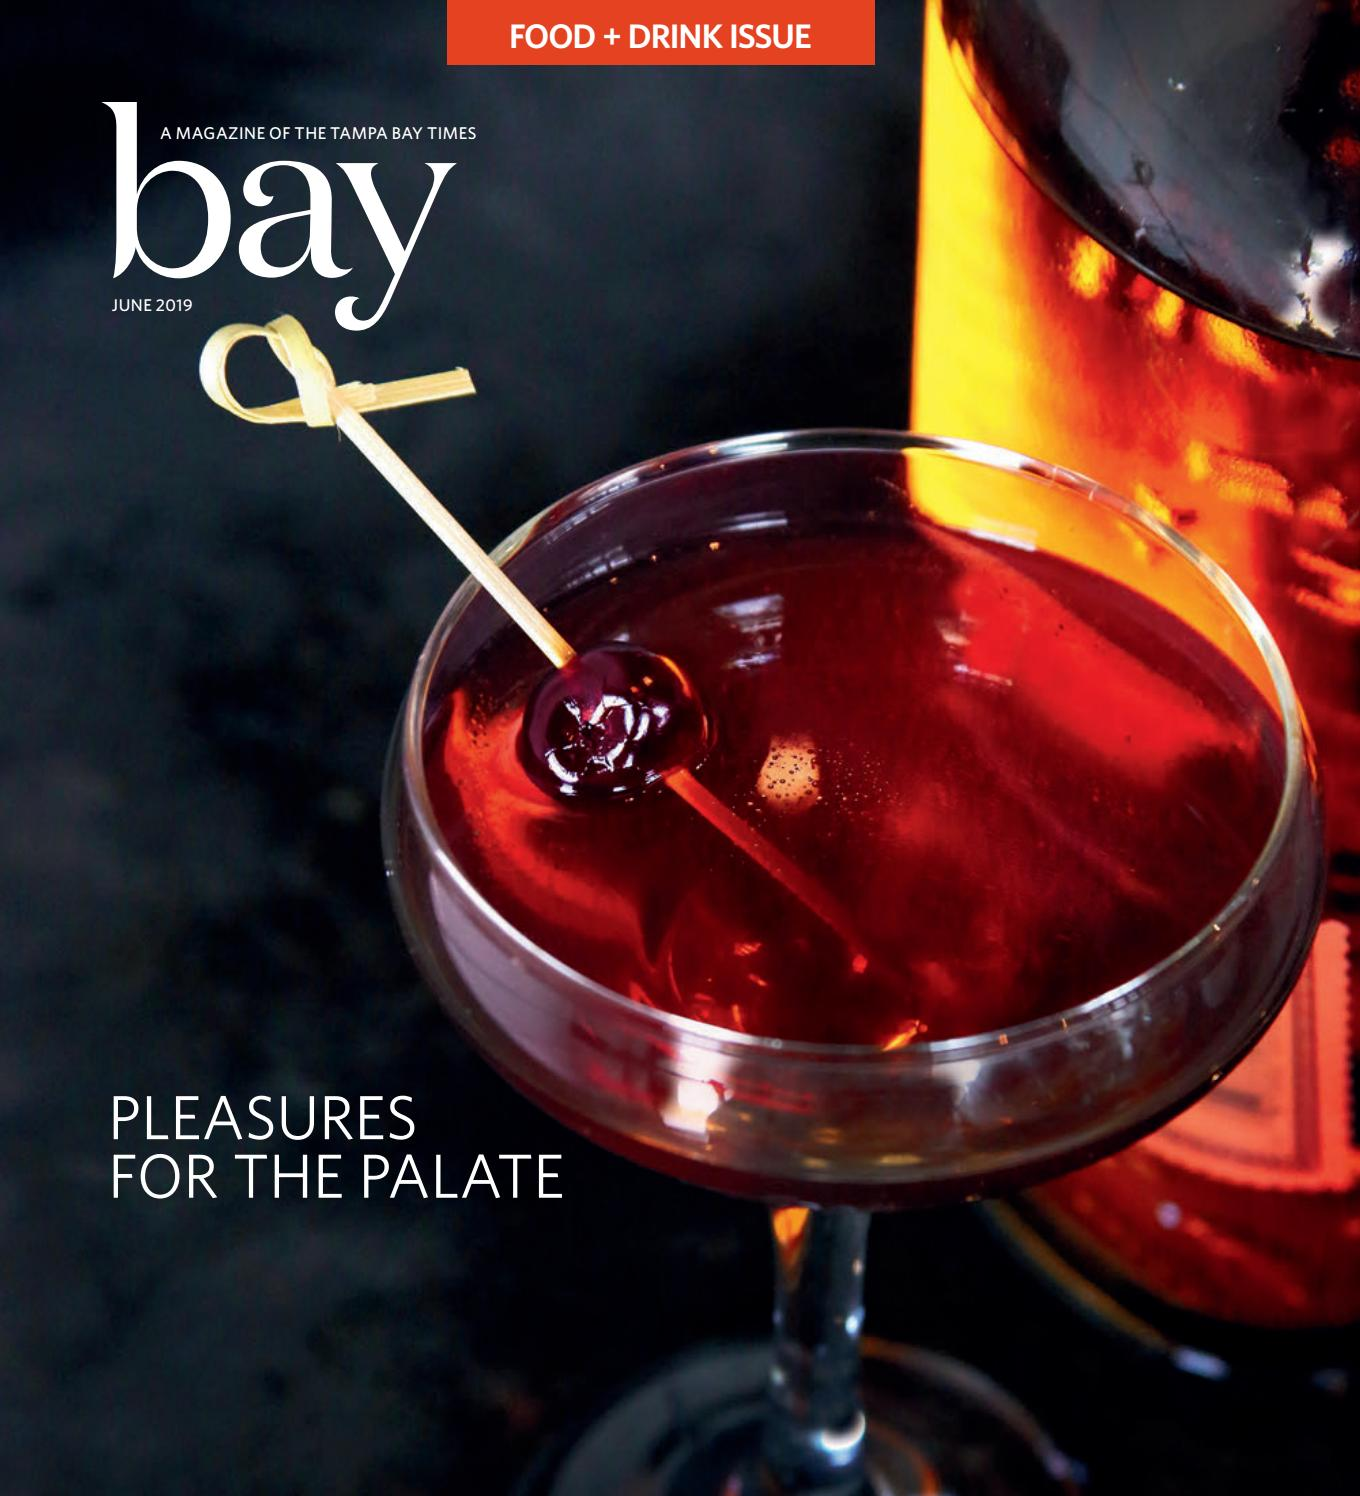 Tampa Bay Times - 2019 June Bay Magazine by Times Creative